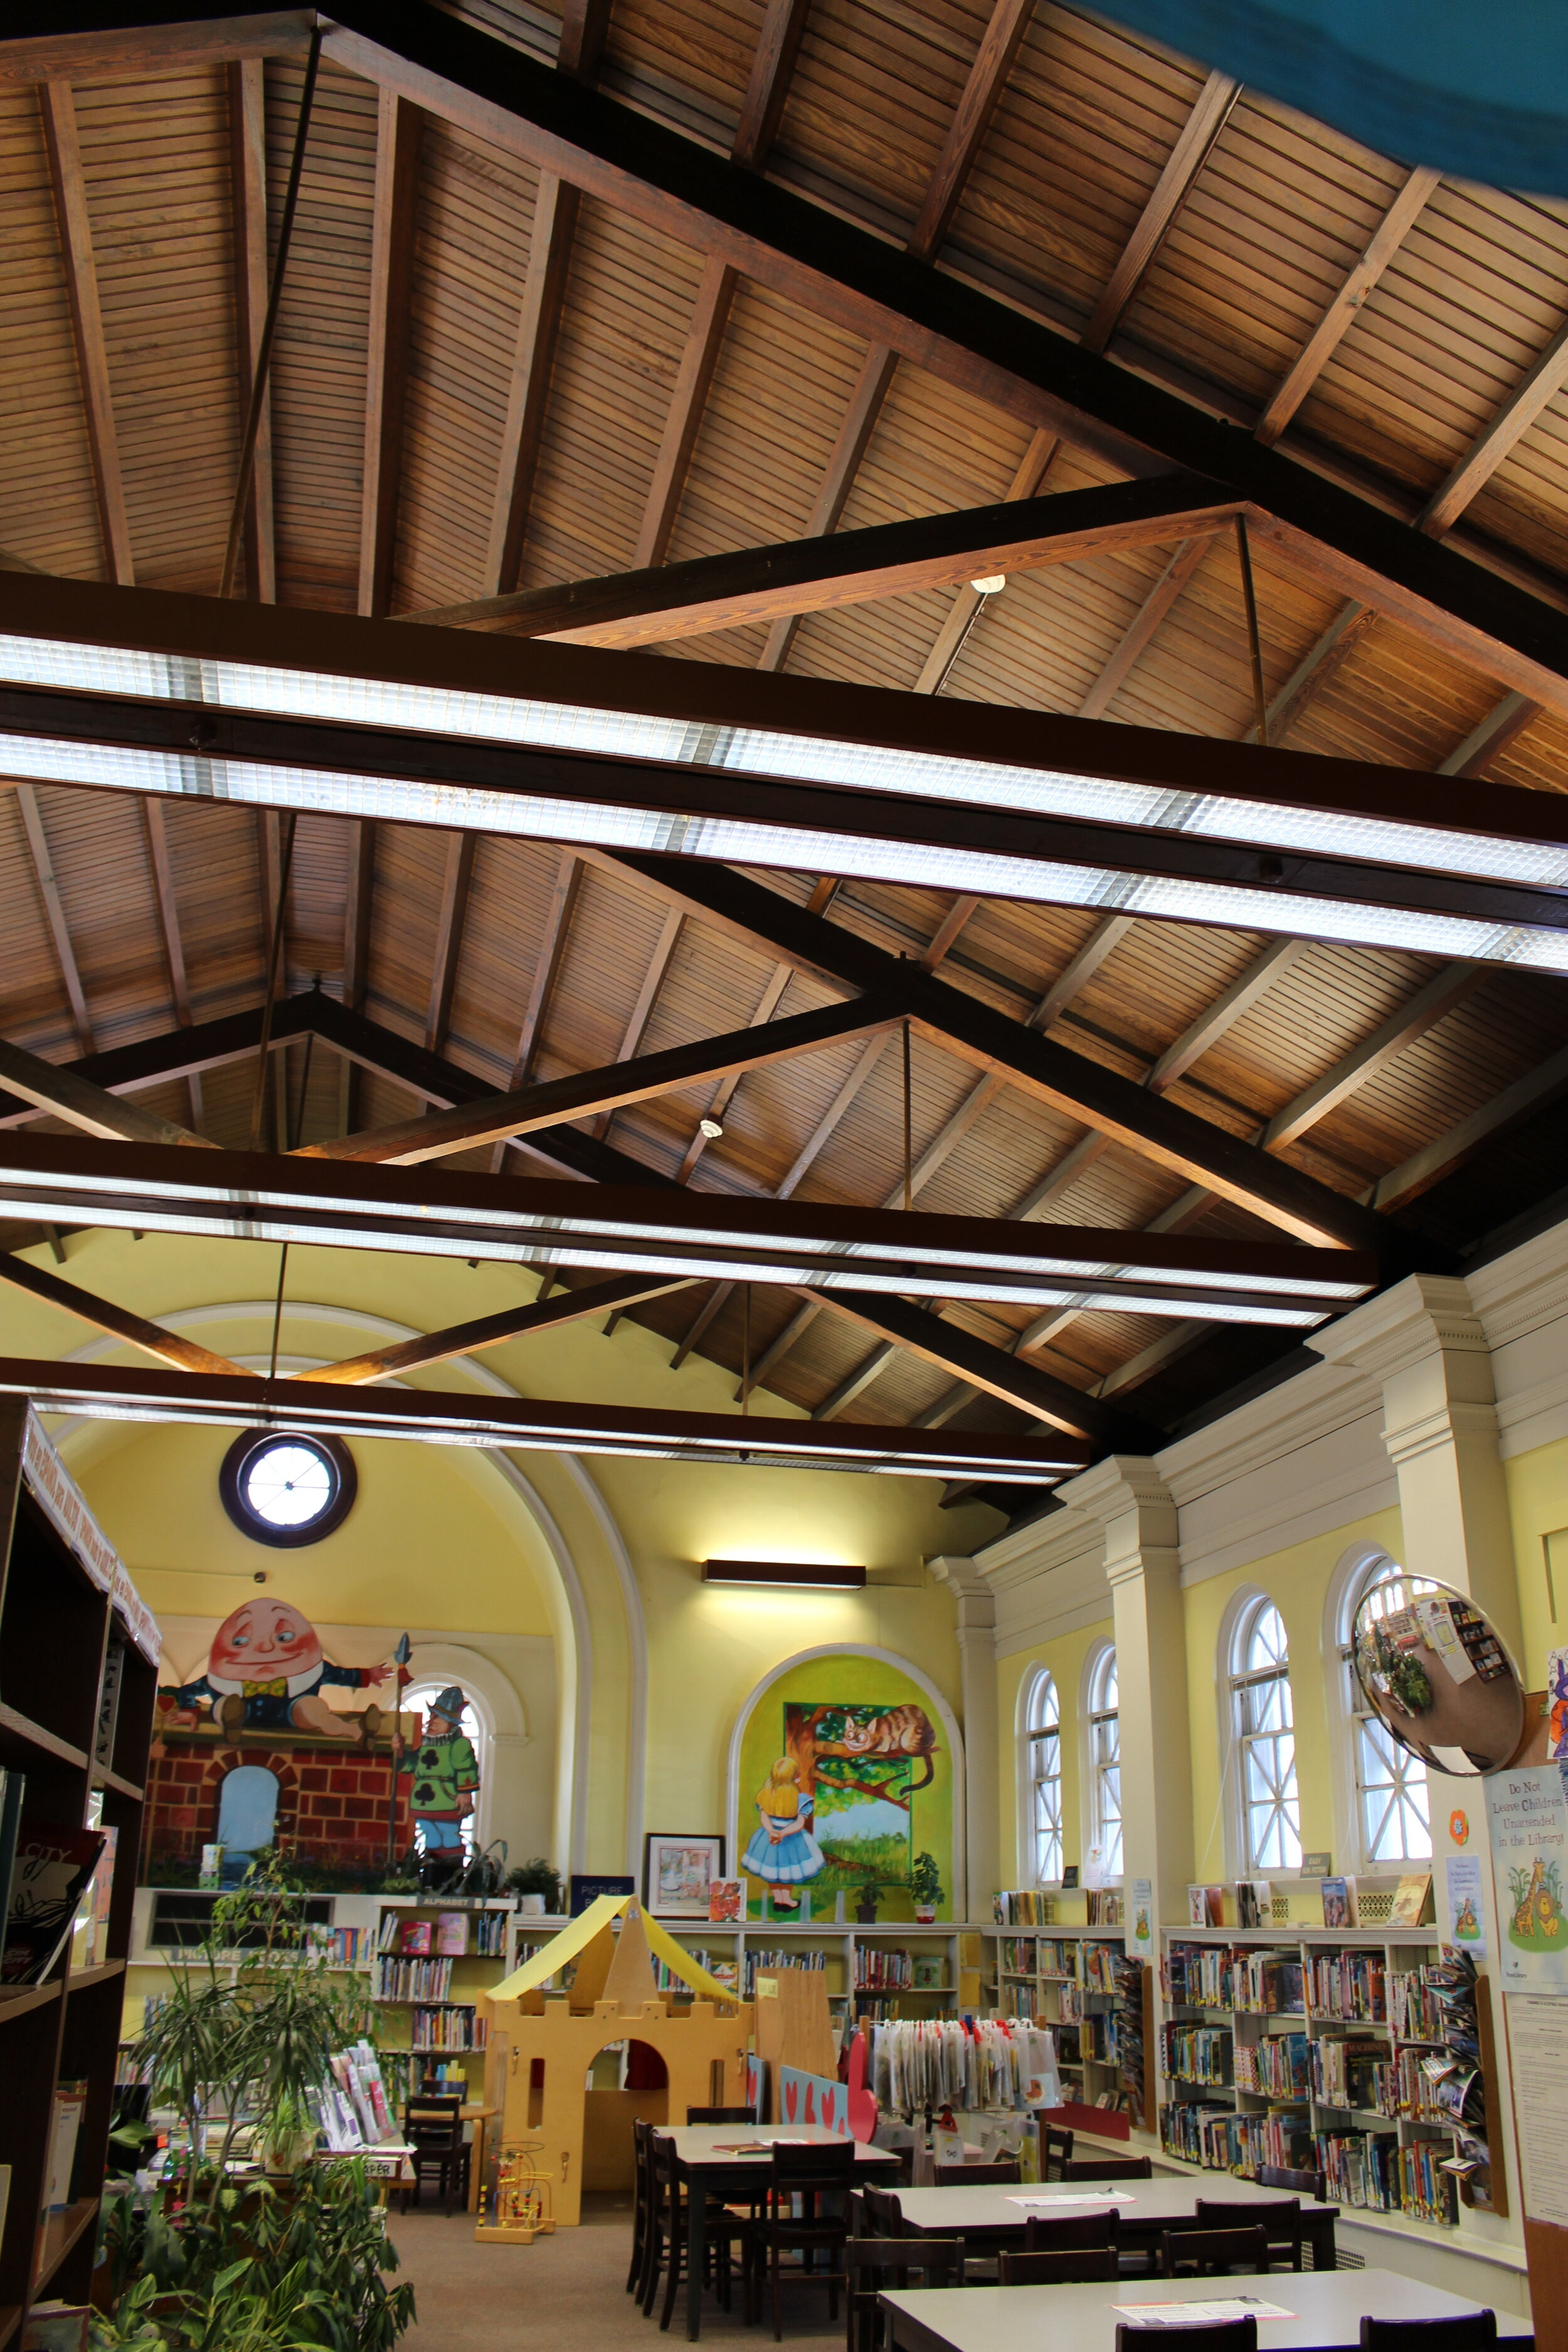 The children's reading room was an addition to the original library. The original lighting scheme included surface mount fluorescent fixtures added above the exposed beams to highlight the ceiling with double rows of surface mount fluorescent lights added below the beams to provide general light.